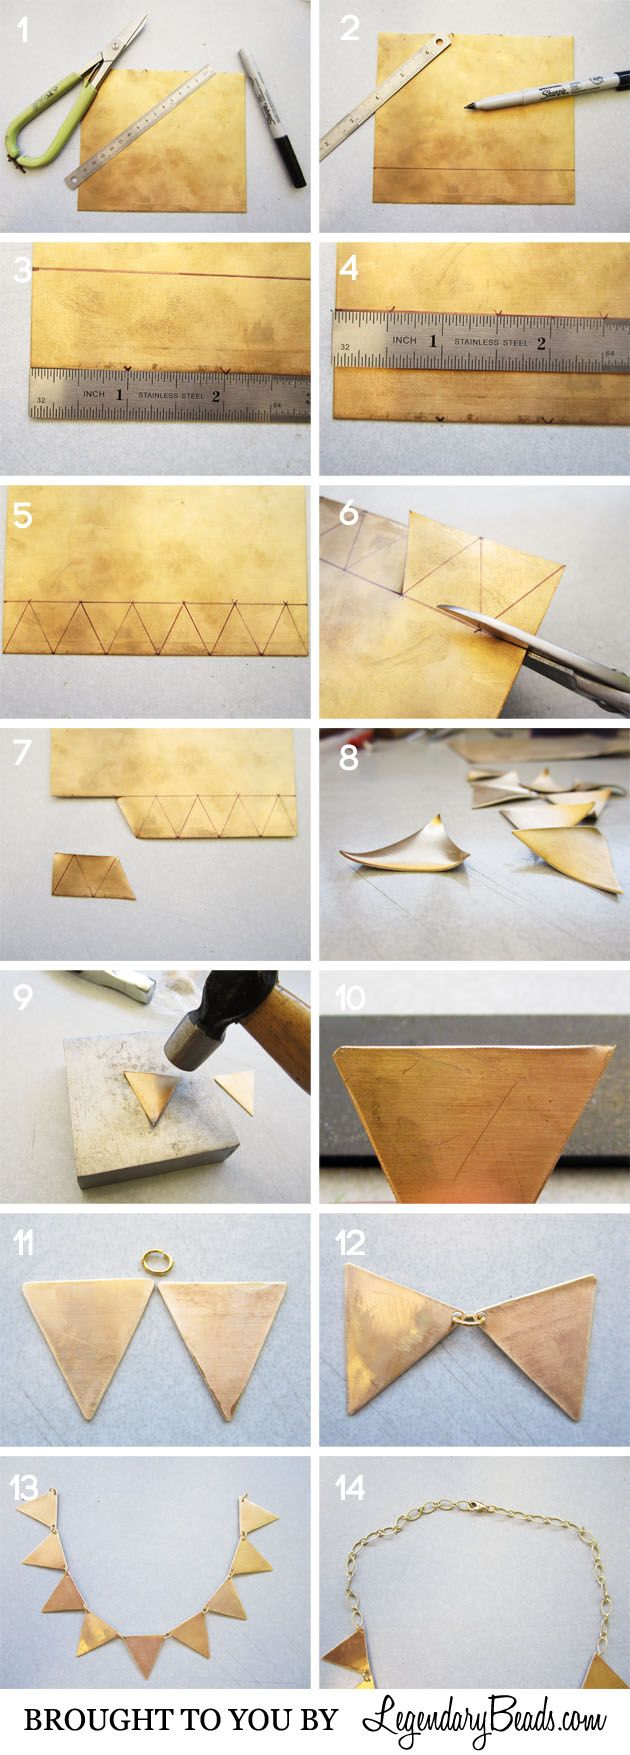 diy geometric brass necklace diy schmuck selber machen pinterest diy schmuck schmuck und. Black Bedroom Furniture Sets. Home Design Ideas